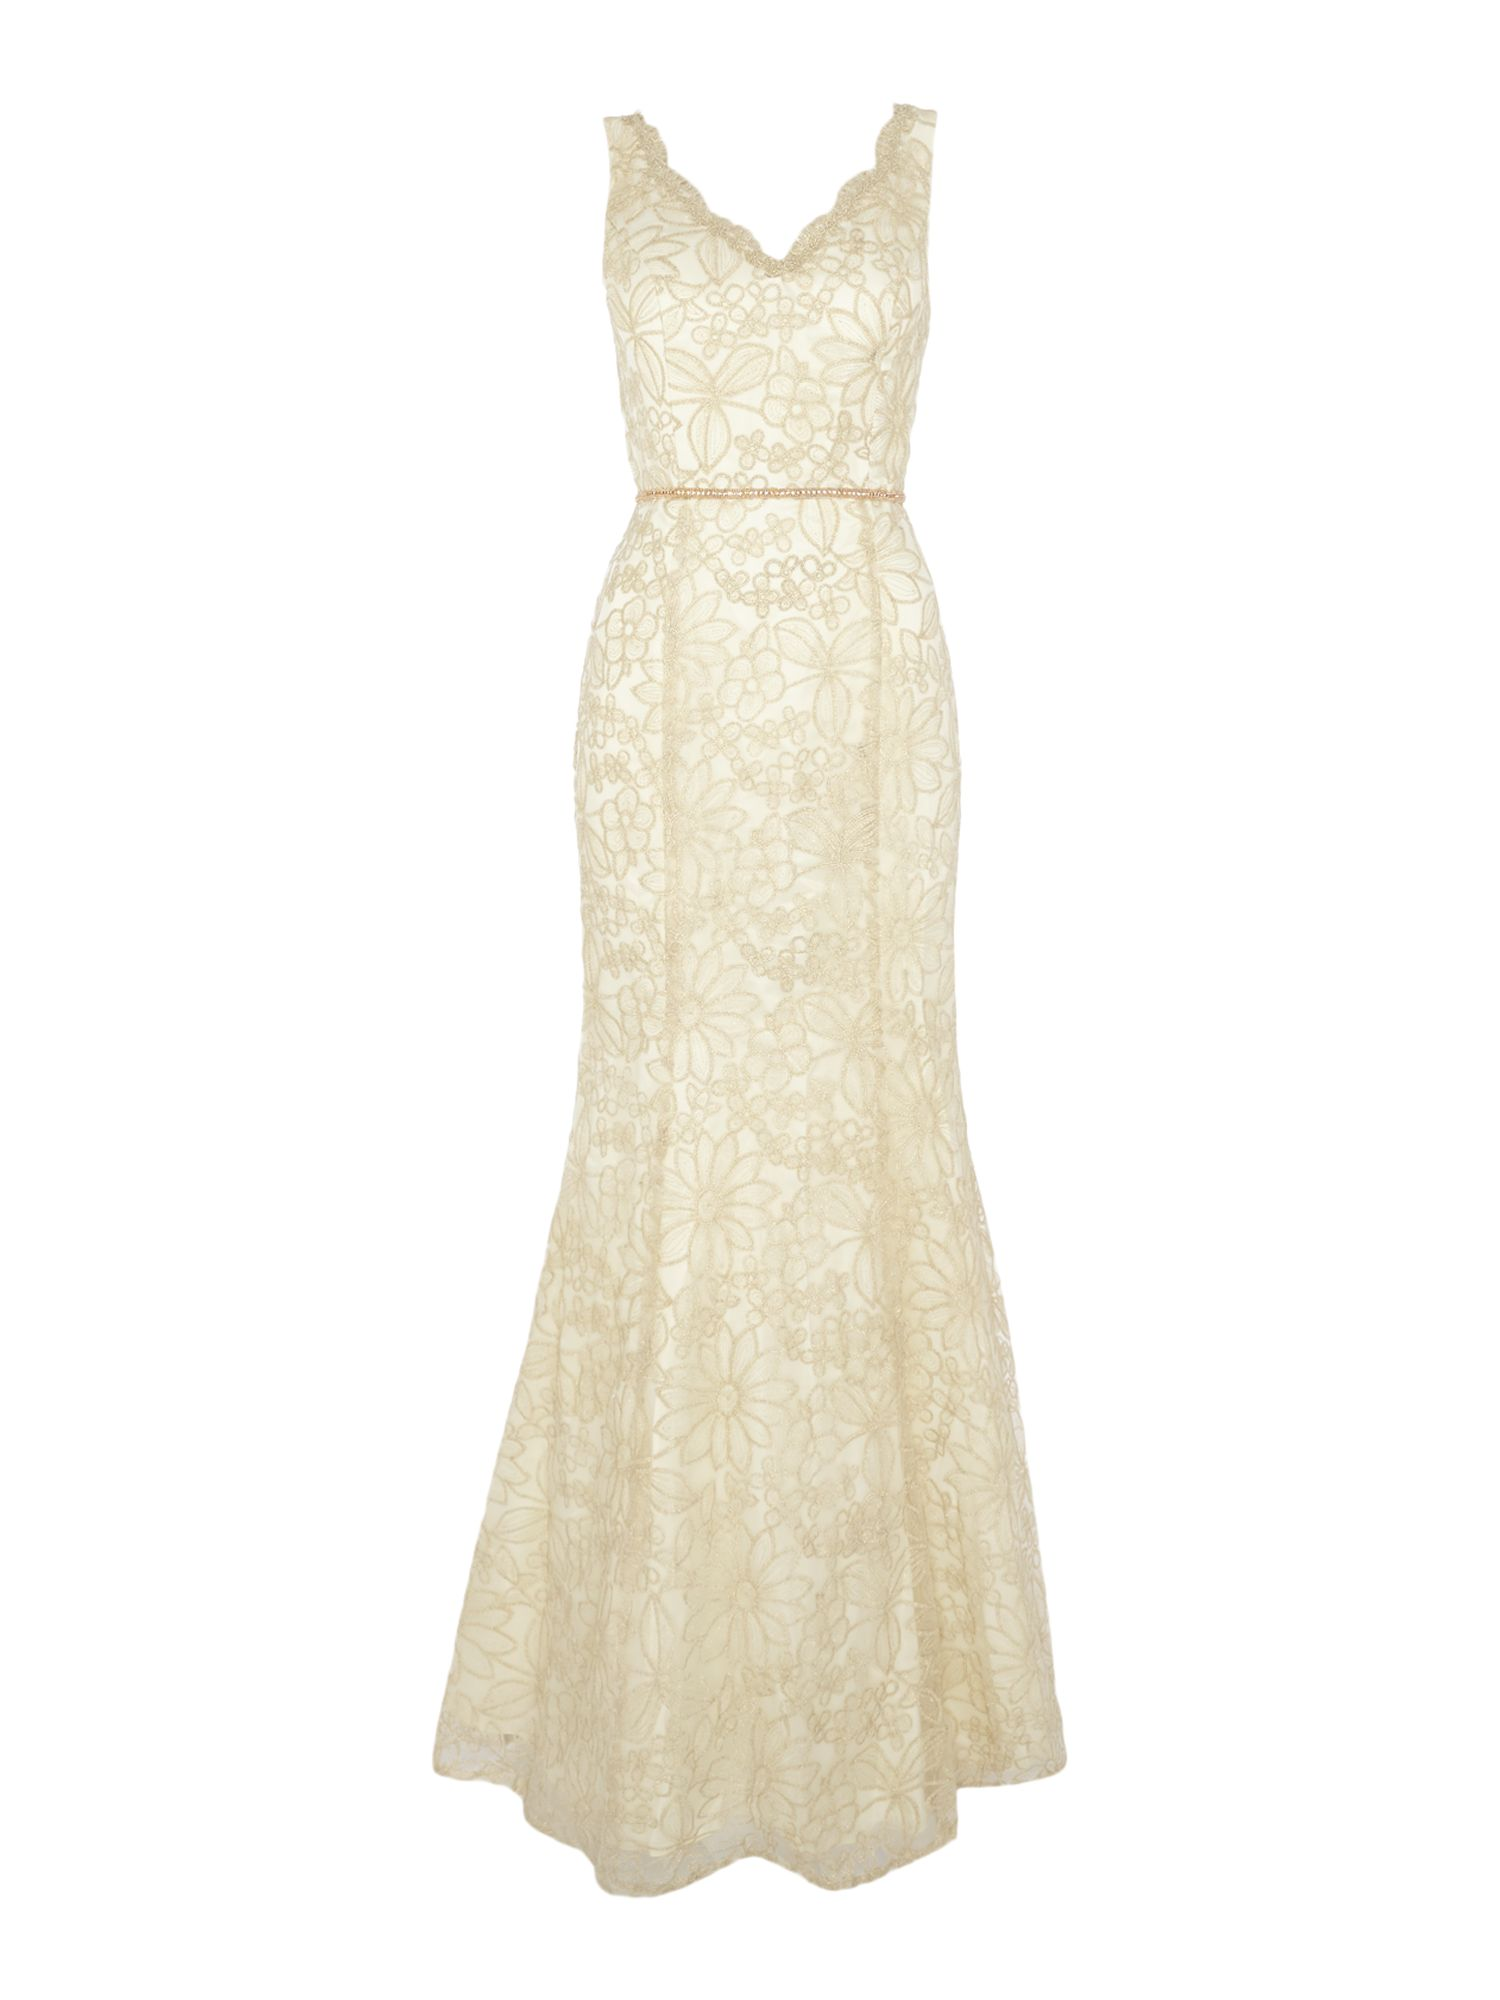 JS Collections Daisy Lace Evening Dress Champagne £125.00 AT vintagedancer.com